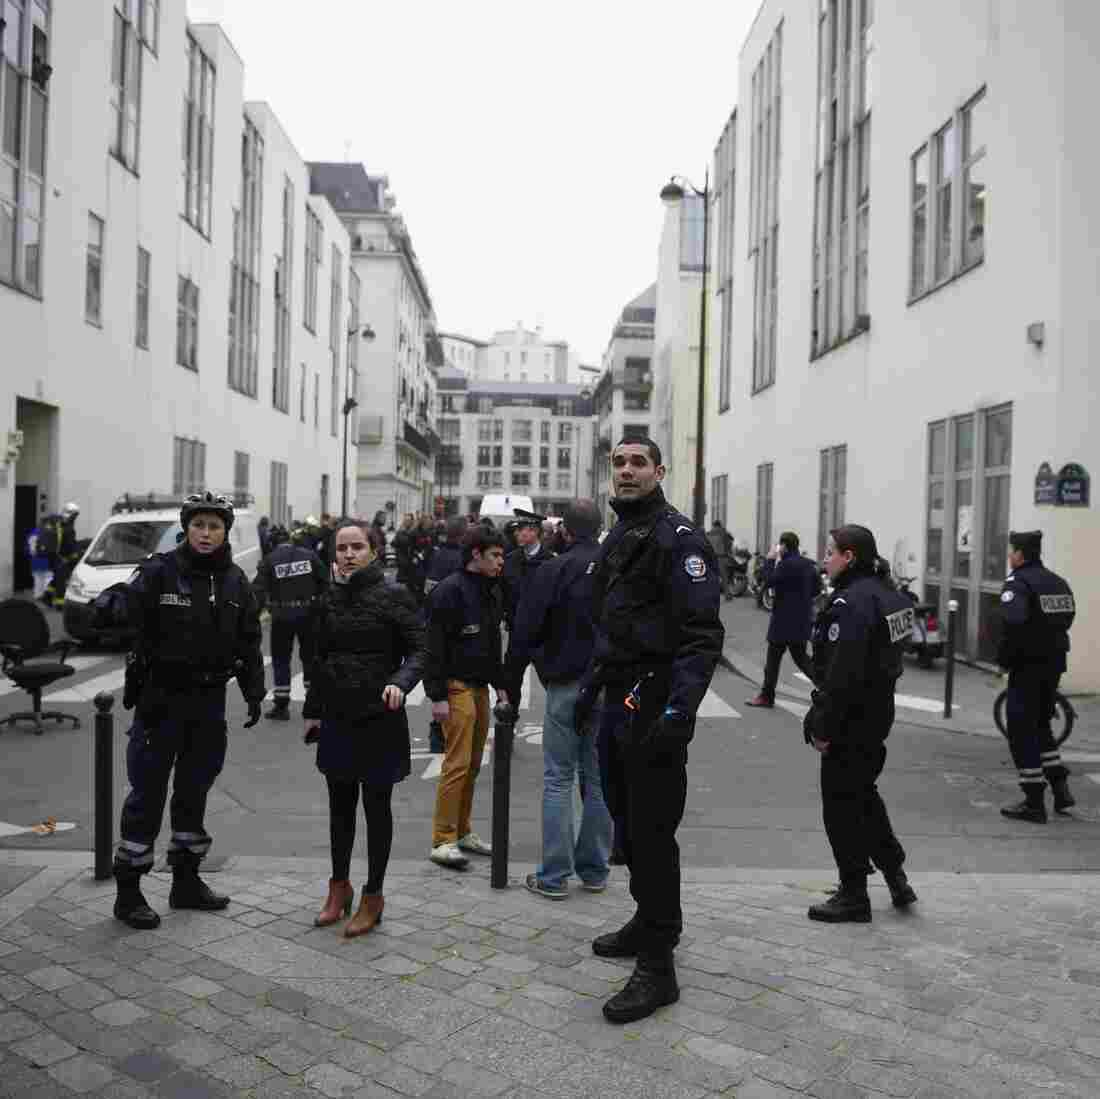 Police forces gather in street outside the offices of the French satirical weekly Charlie Hebdo in Paris on Wednesday, after armed gunmen stormed the offices.